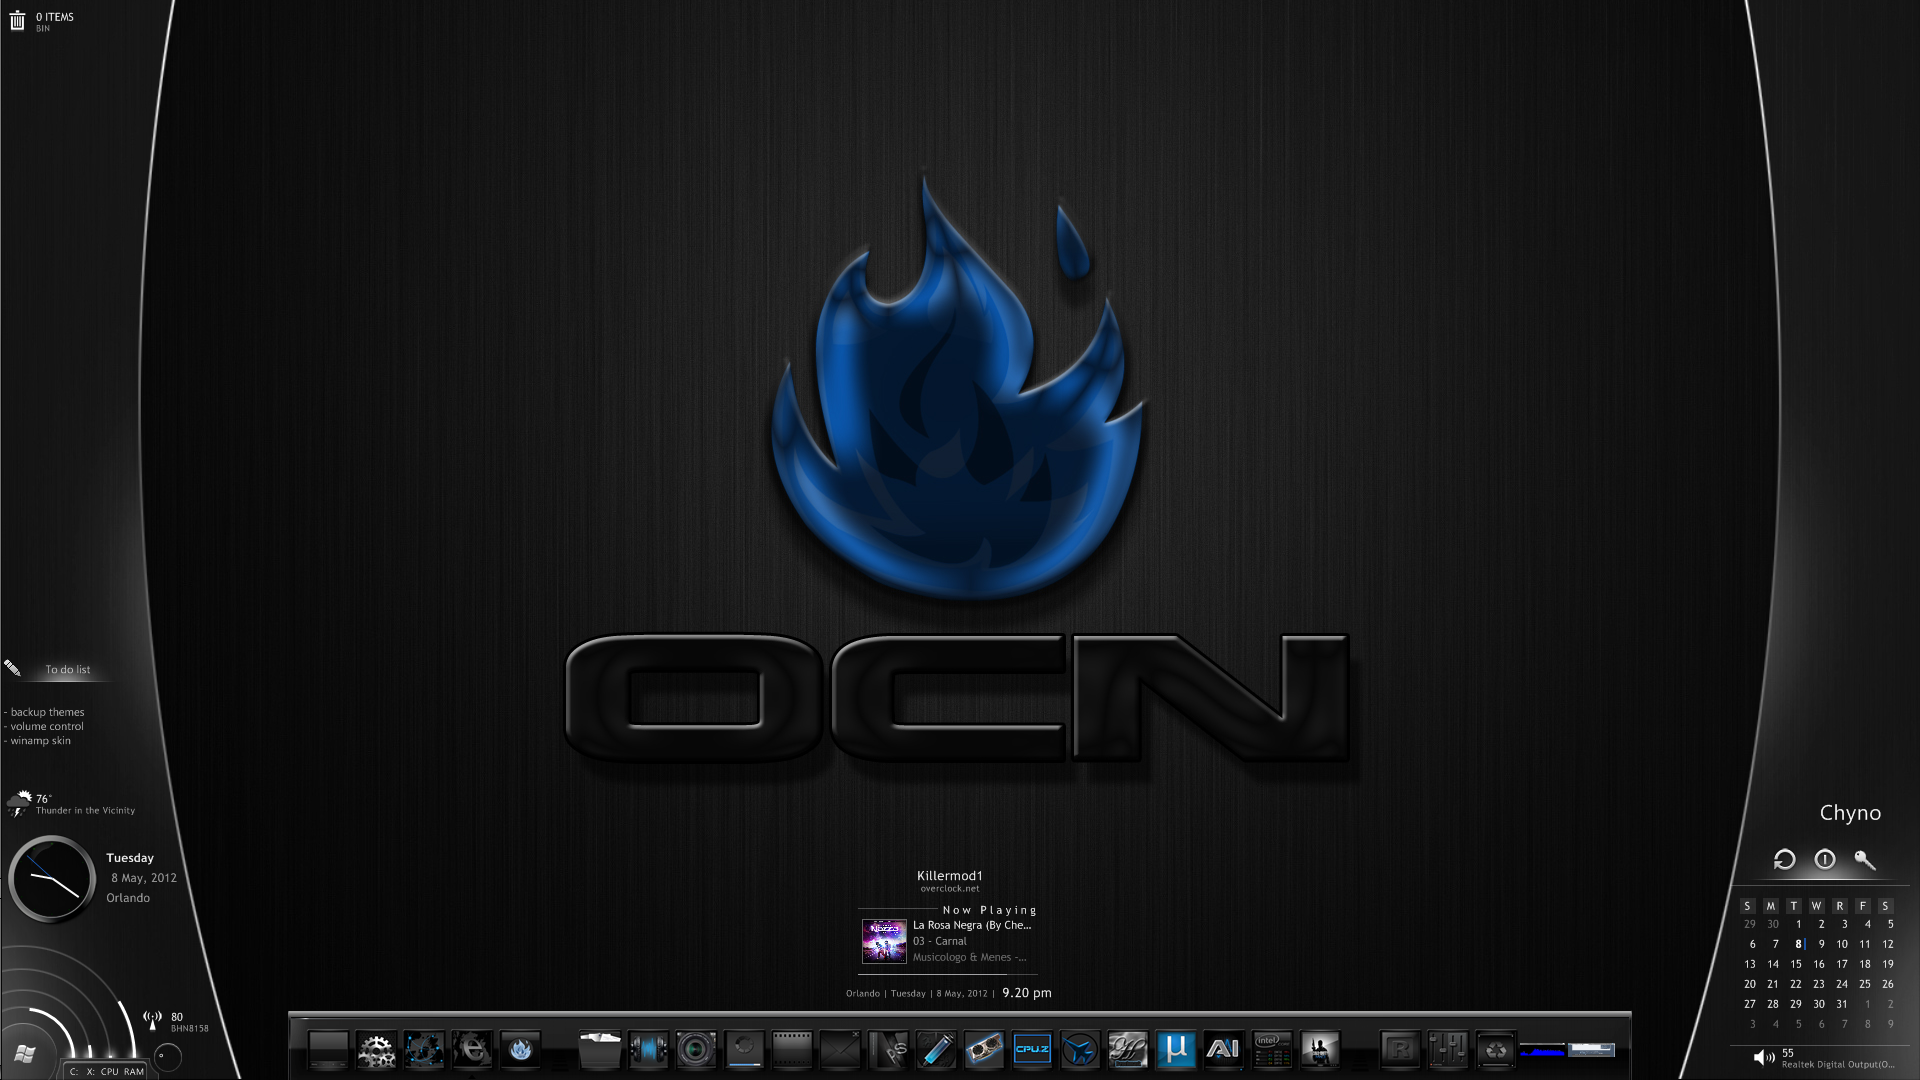 Post your desktop 2012 - Page 119 - Overclock net - An